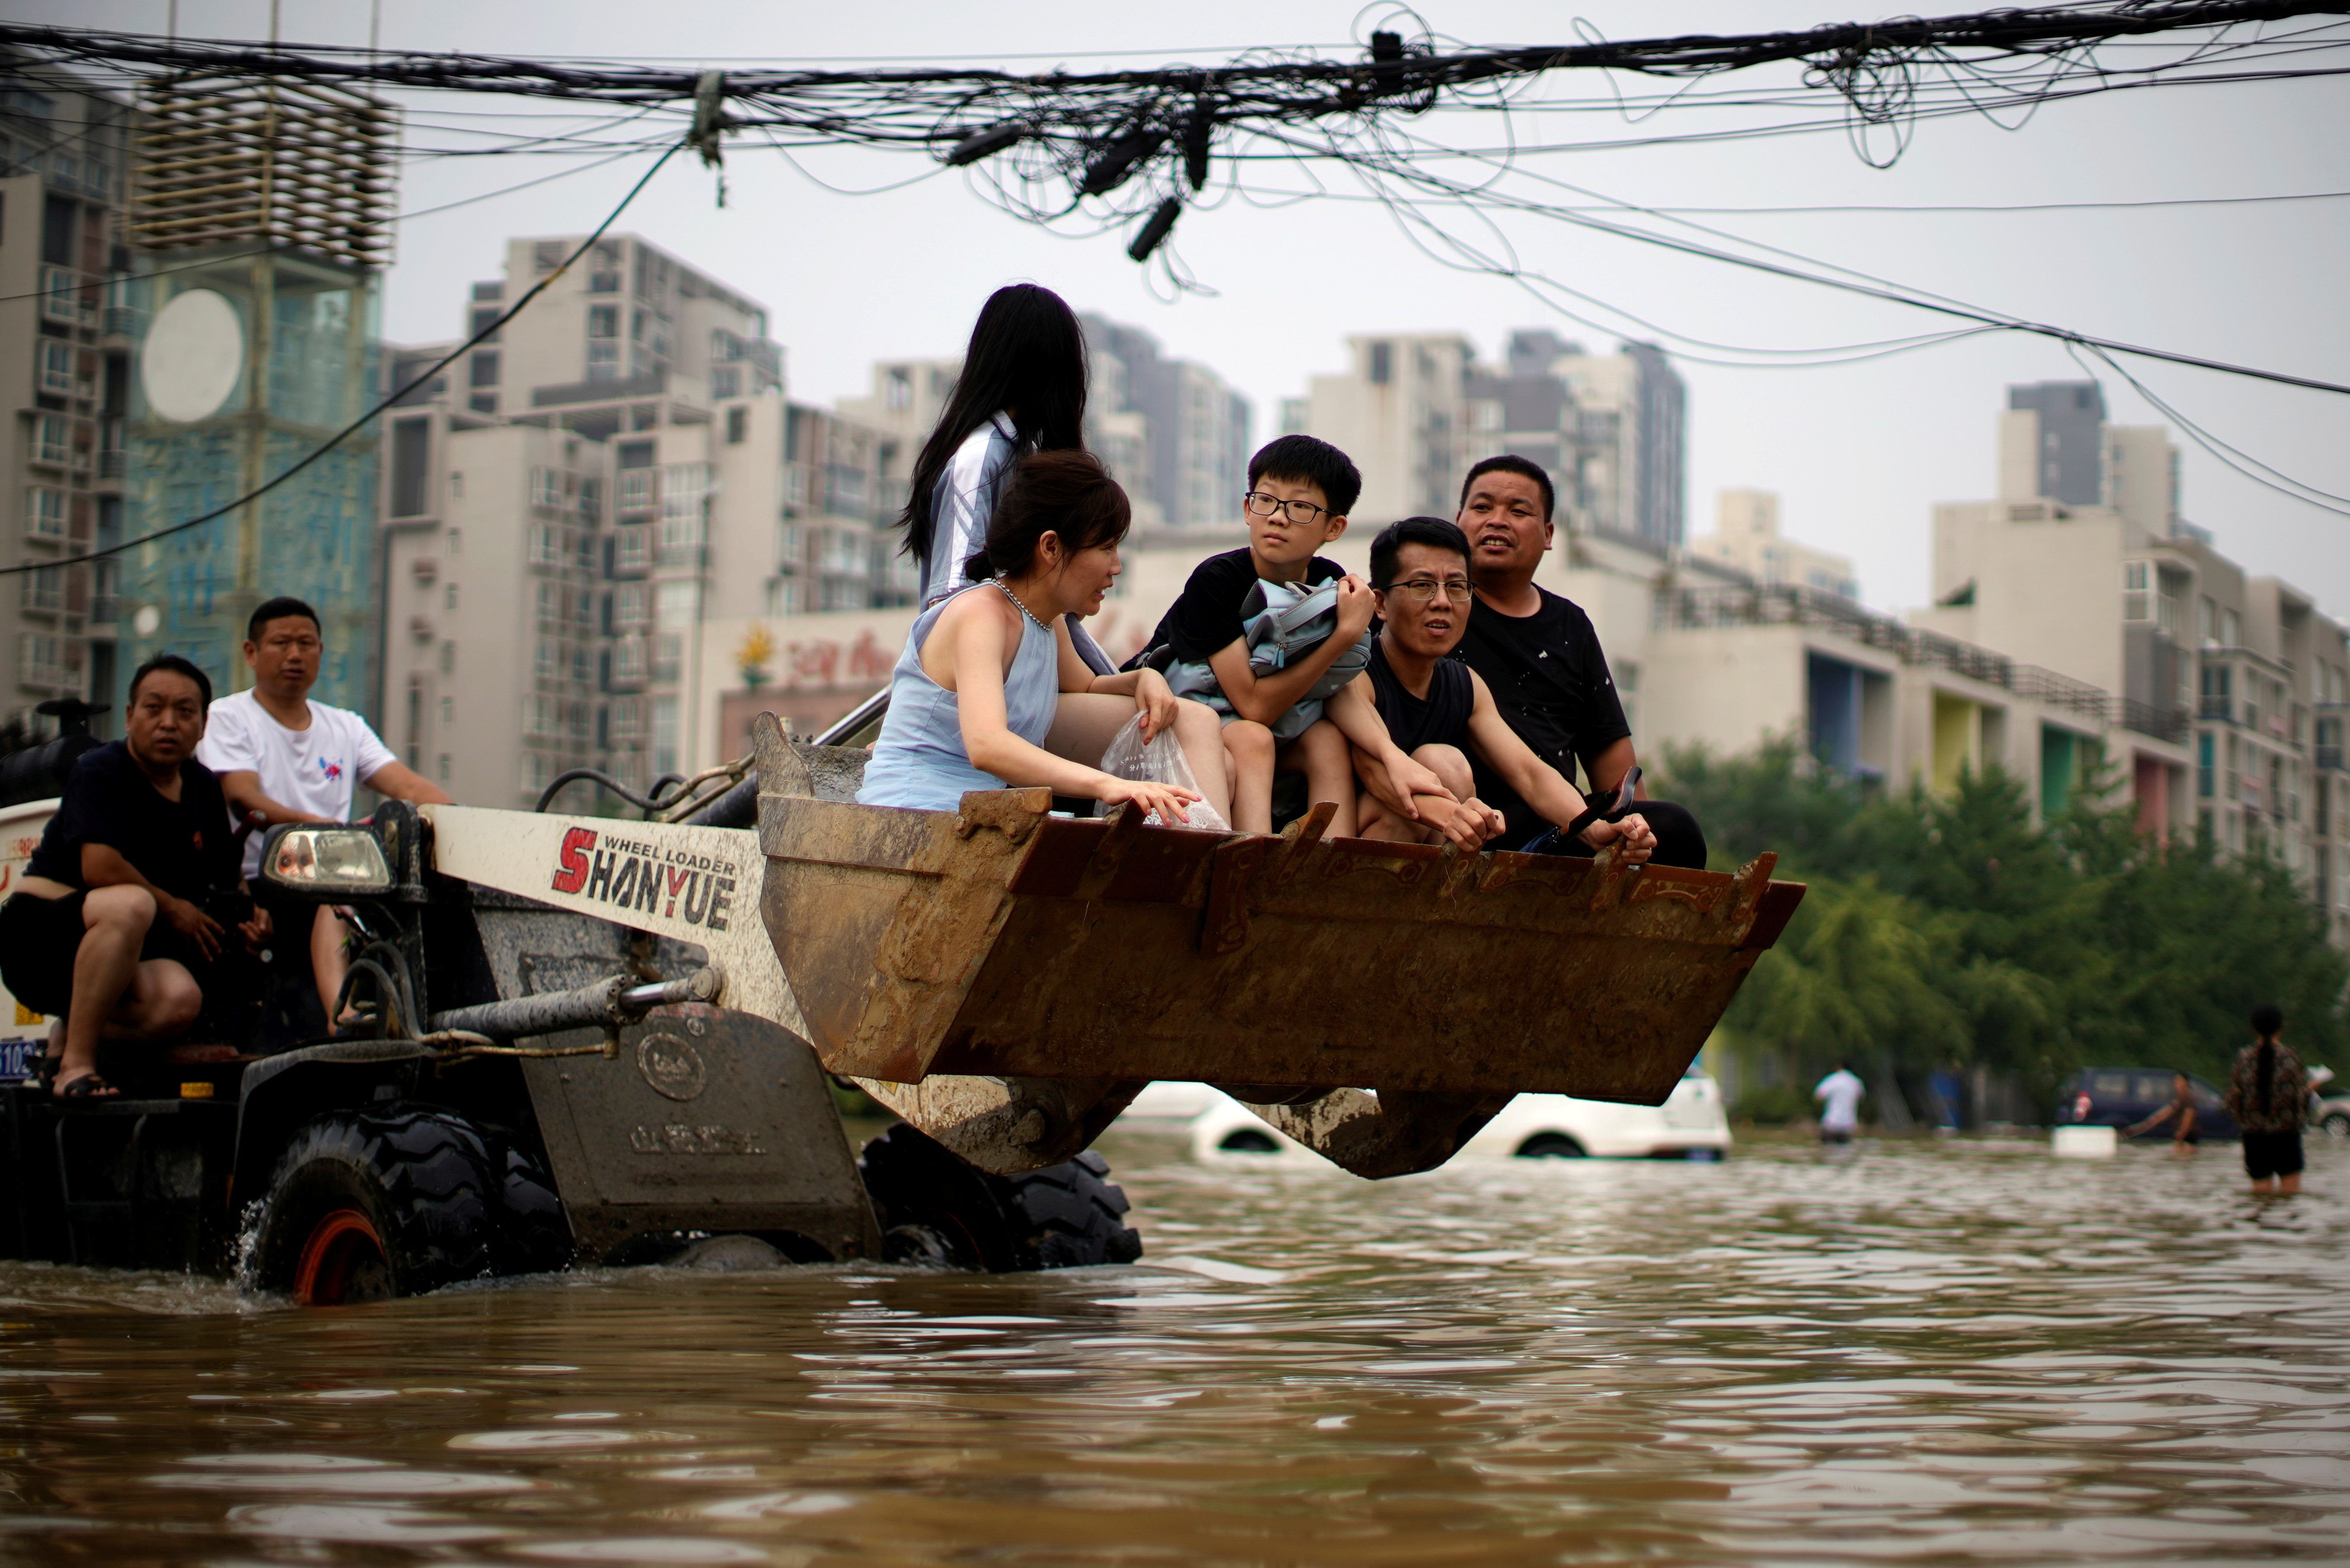 People ride on a front loader as they make their way through floodwaters following heavy rainfall in Zhengzhou, Henan province, China July 23, 2021. REUTERS/Aly Song/File Photo